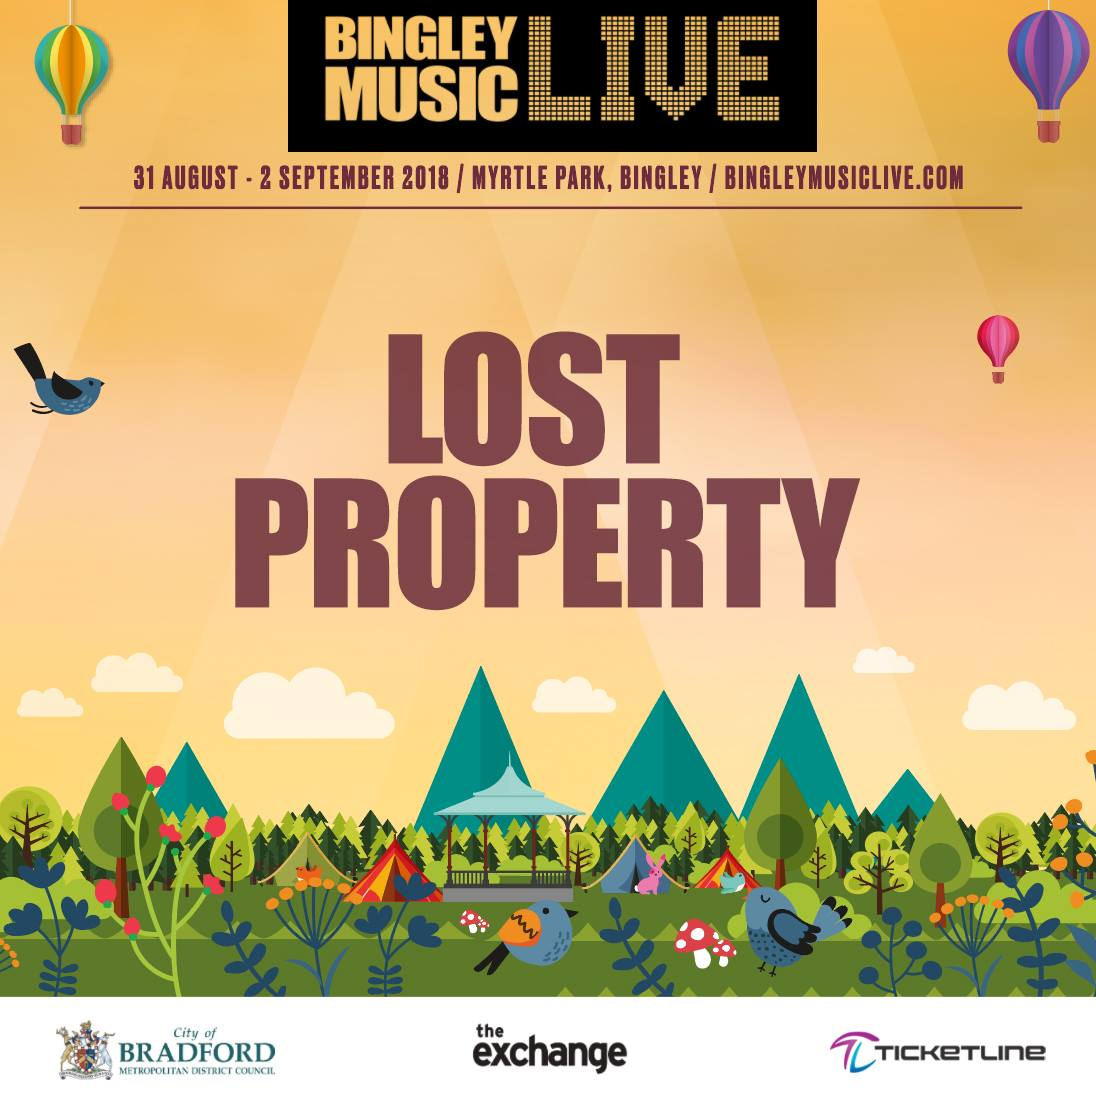 Bingley Music Live news: We've collected a few things that some of you might be missing. Drop us an inbox…